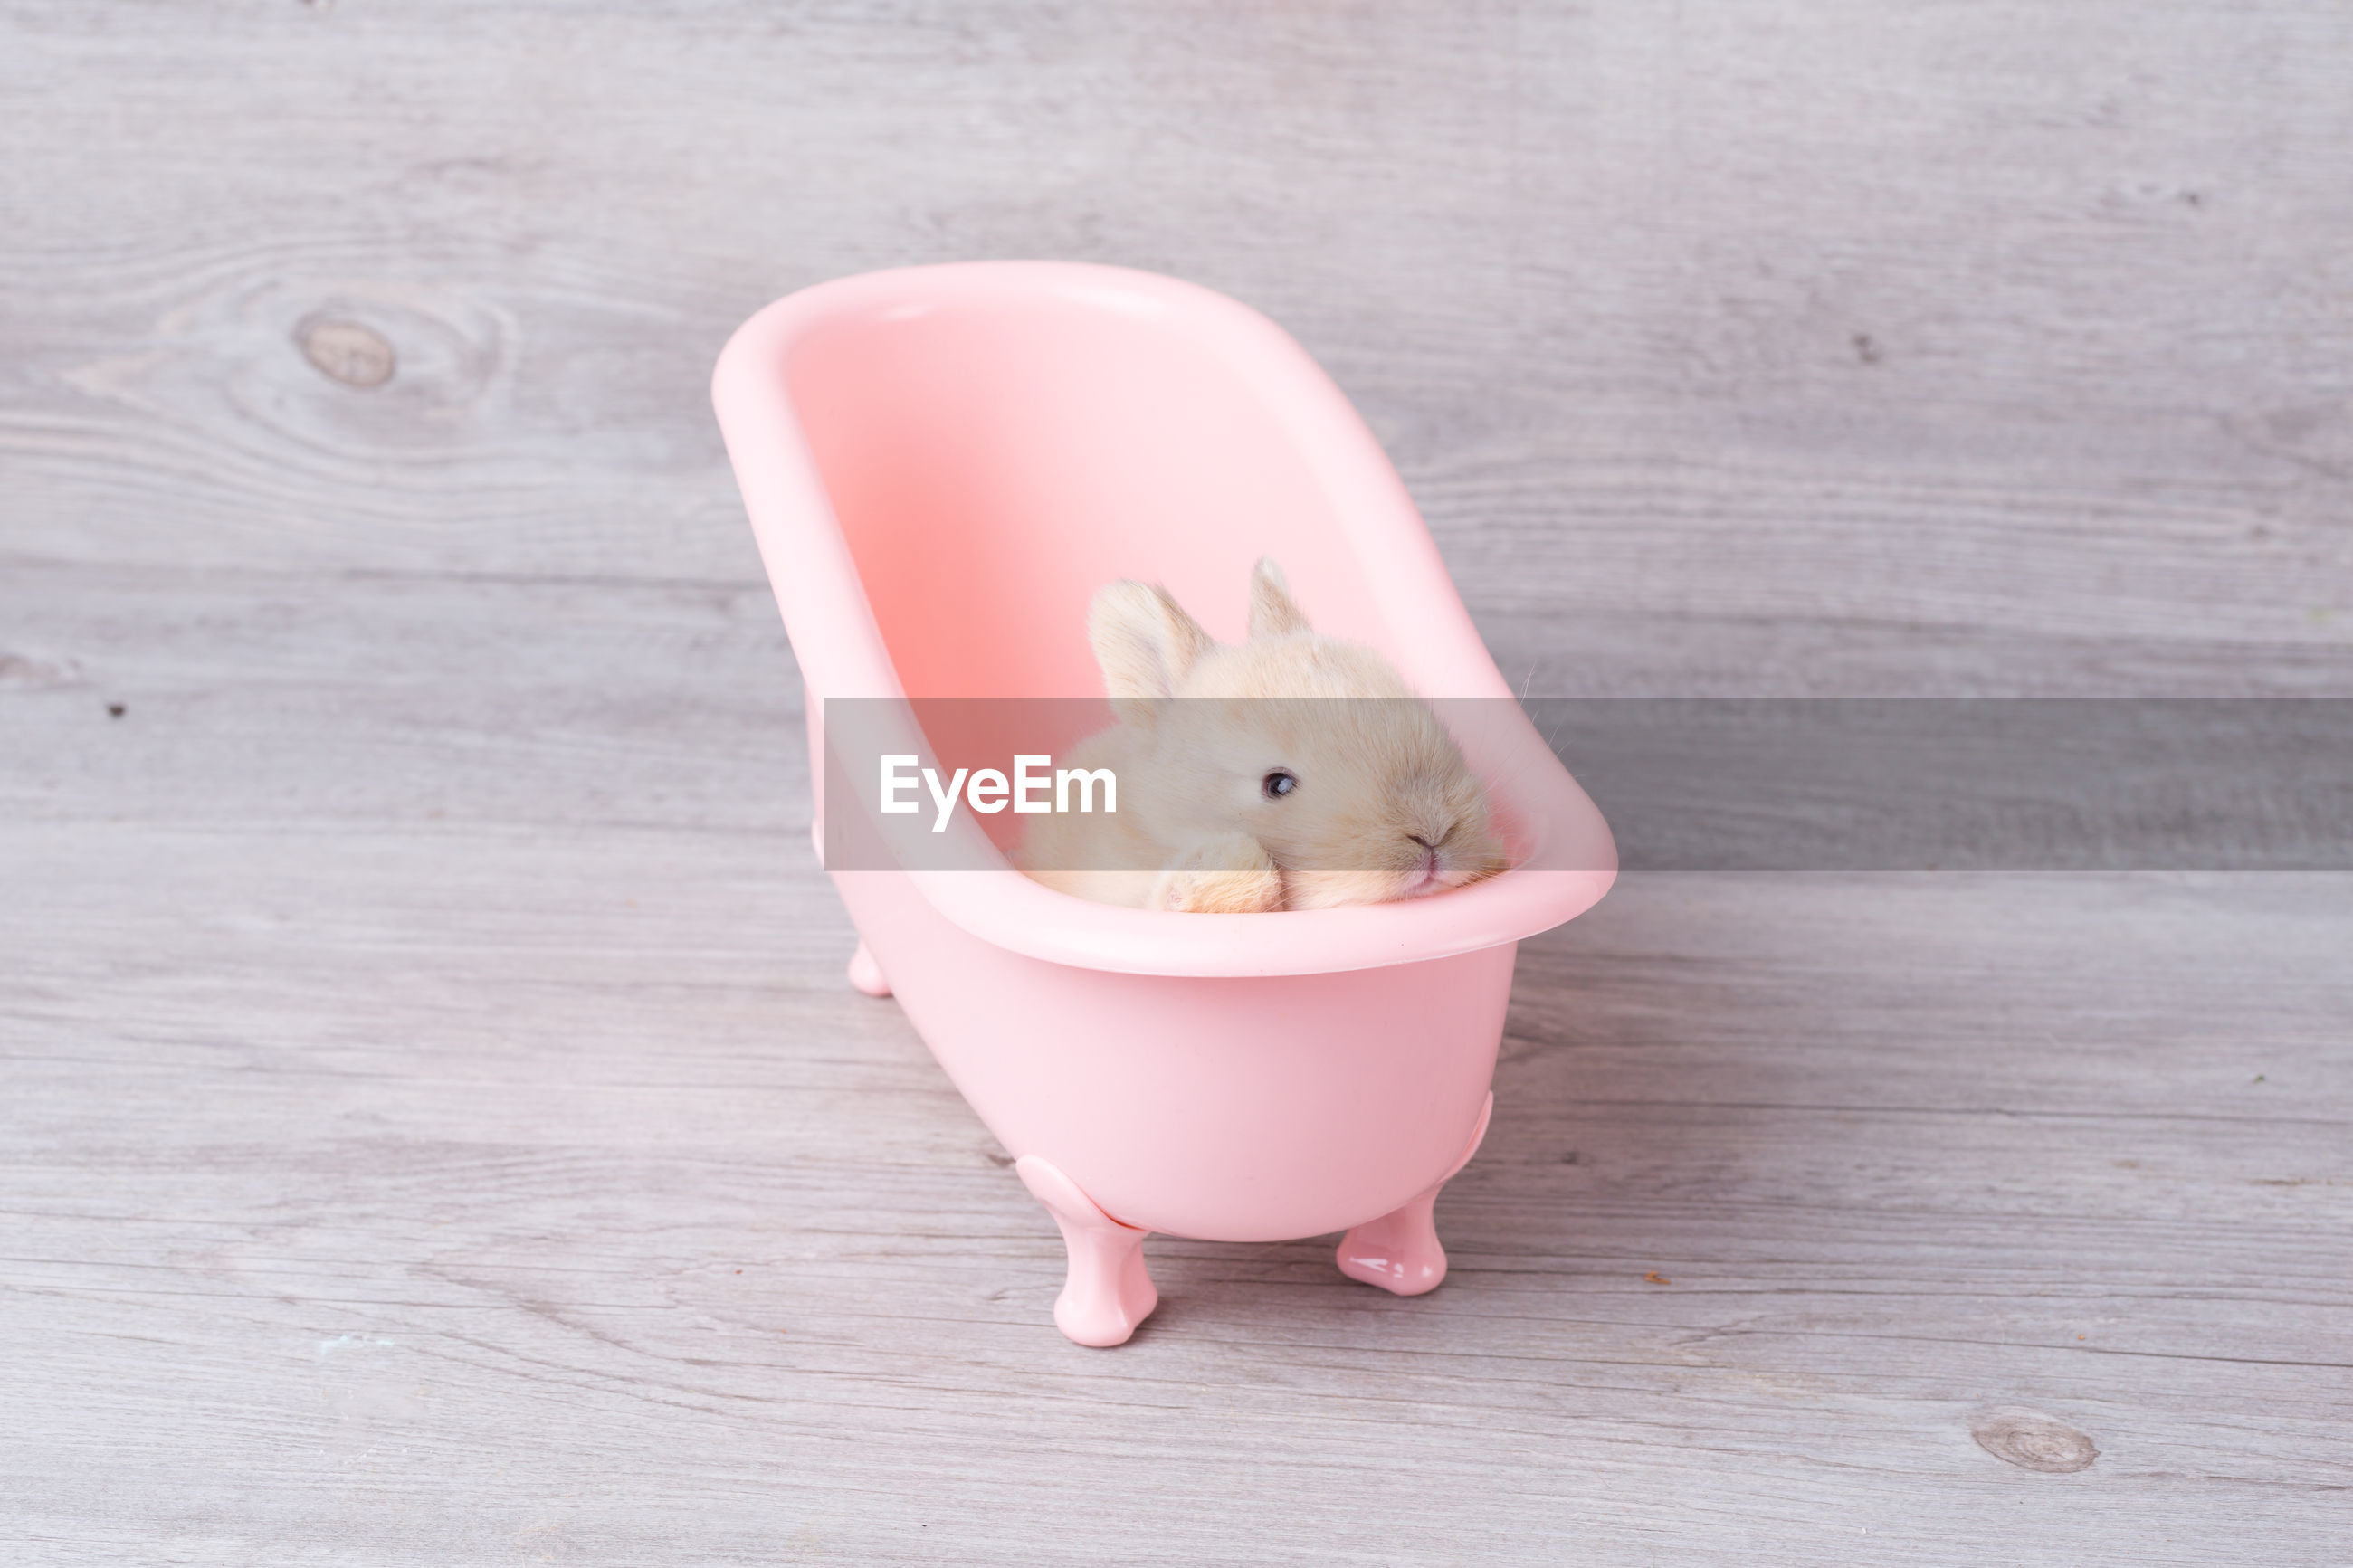 Cute little rabbit on a pink bathtub. rabbit that is cute and precise according to breed standards.